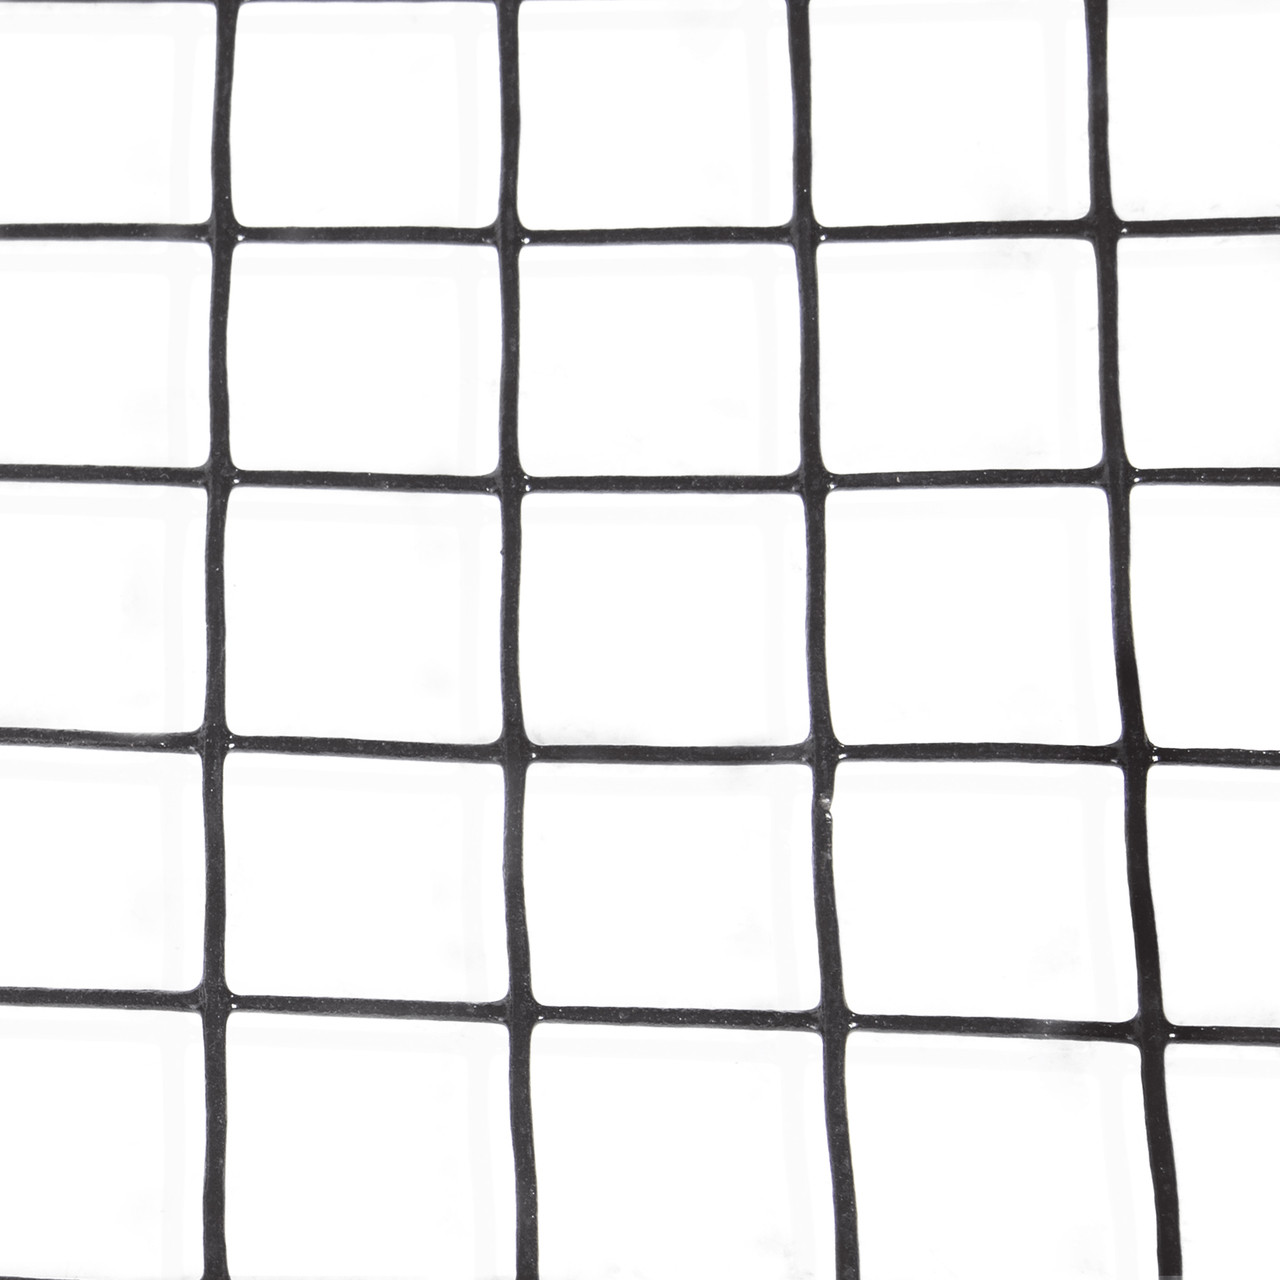 16 Gauge Black Vinyl Coated Welded Wire Mesh Size 1.5 inch by 1.5 ...